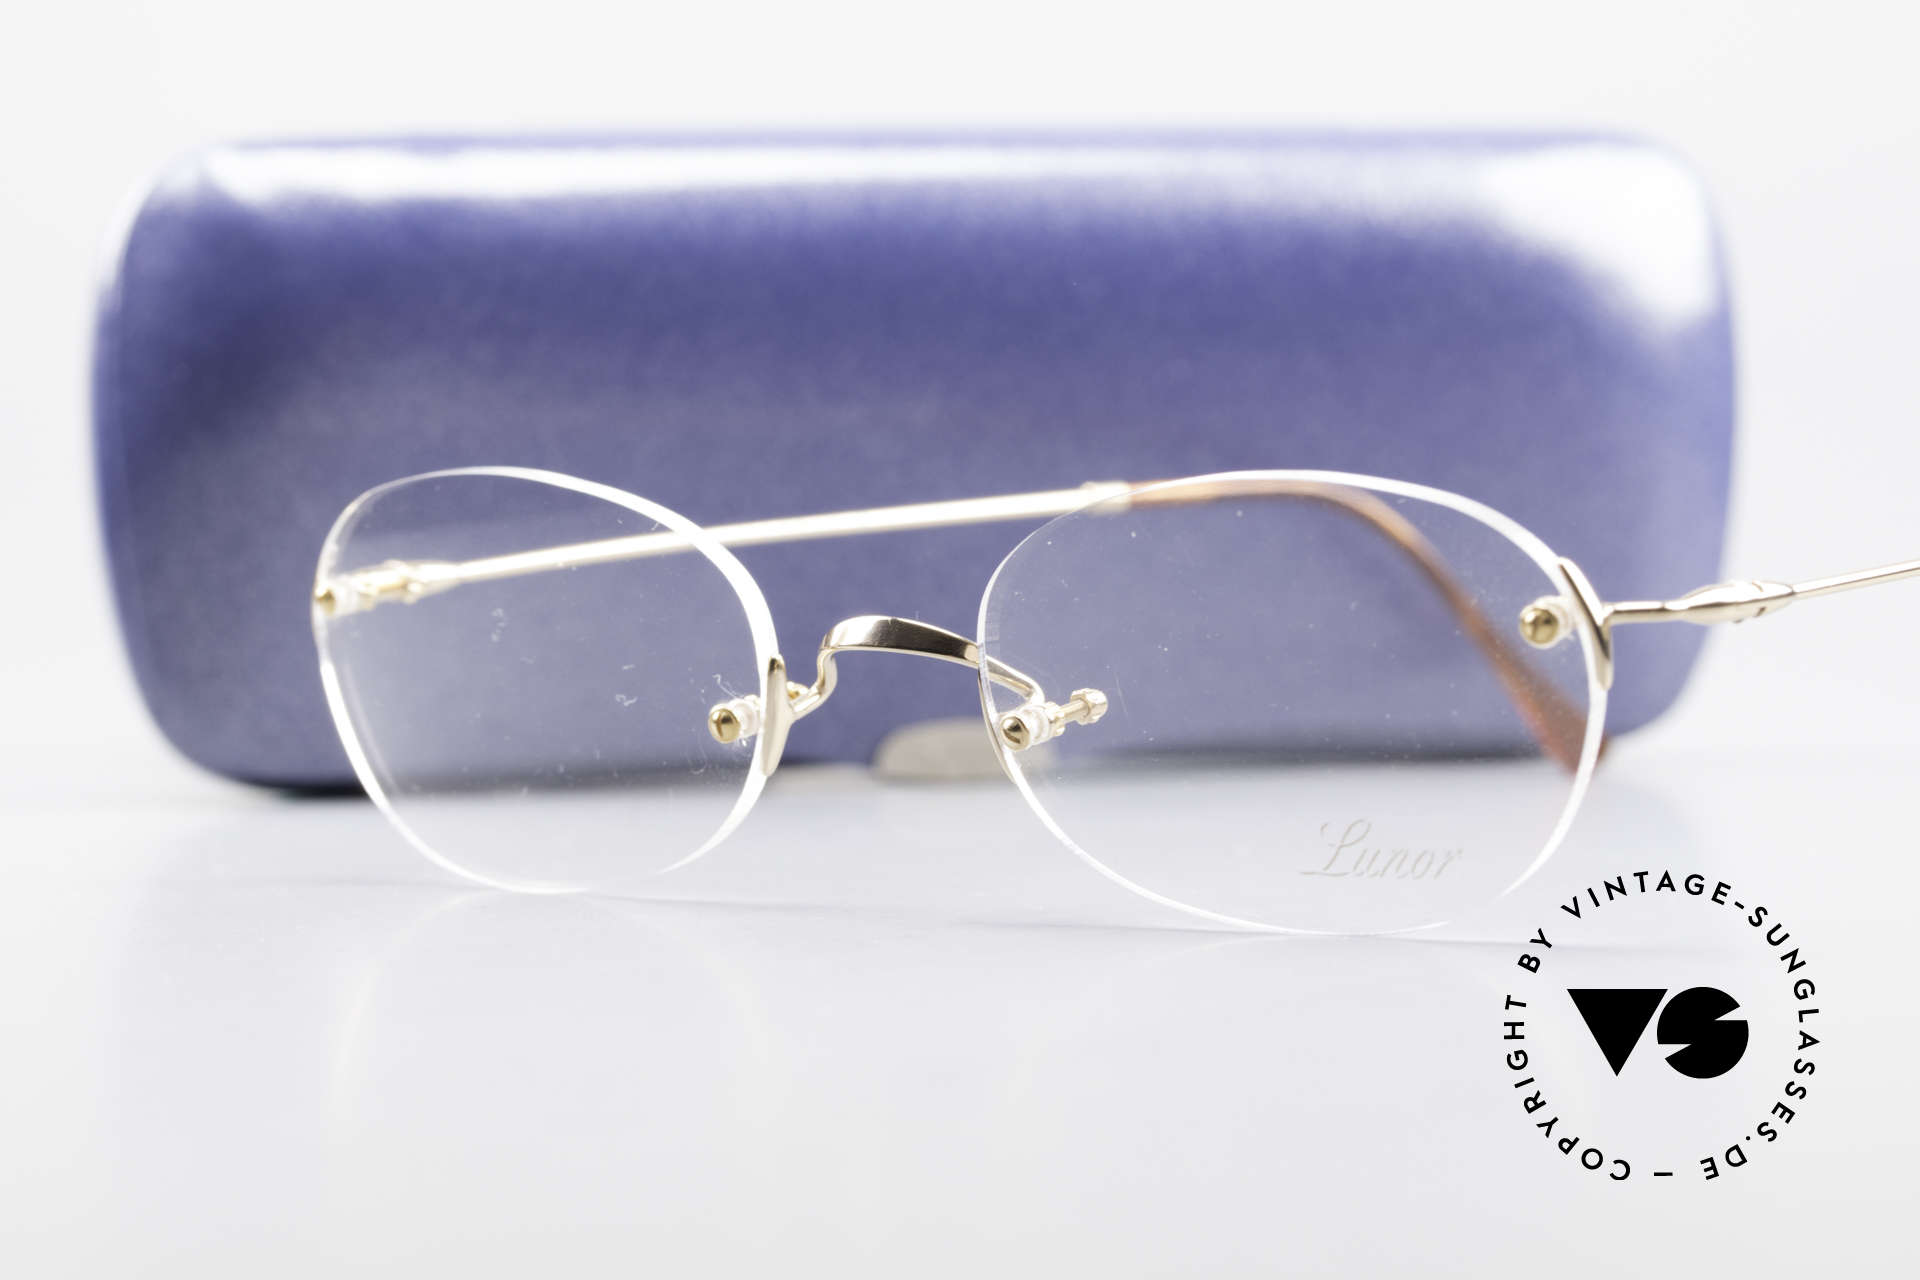 Lunor Classic Future GP Rare Vintage Frame Rimless, Size: small, Made for Men and Women